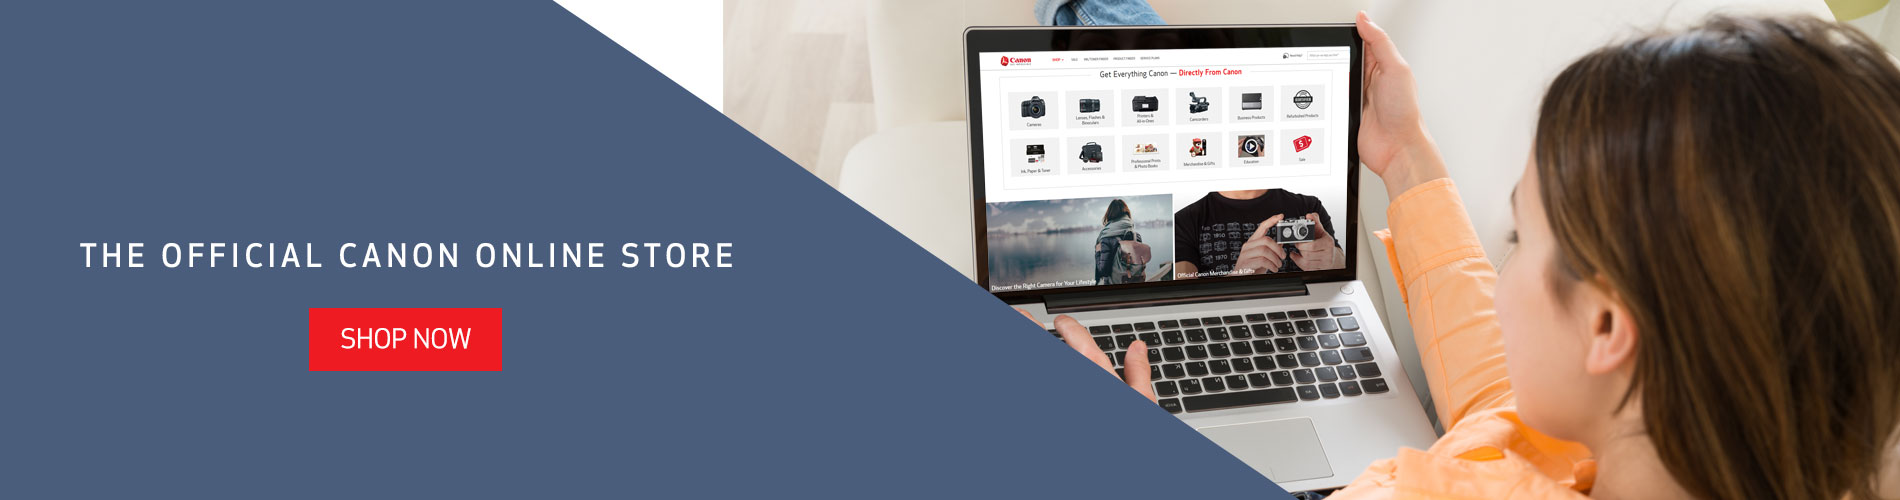 Shop the Official Canon Online Store